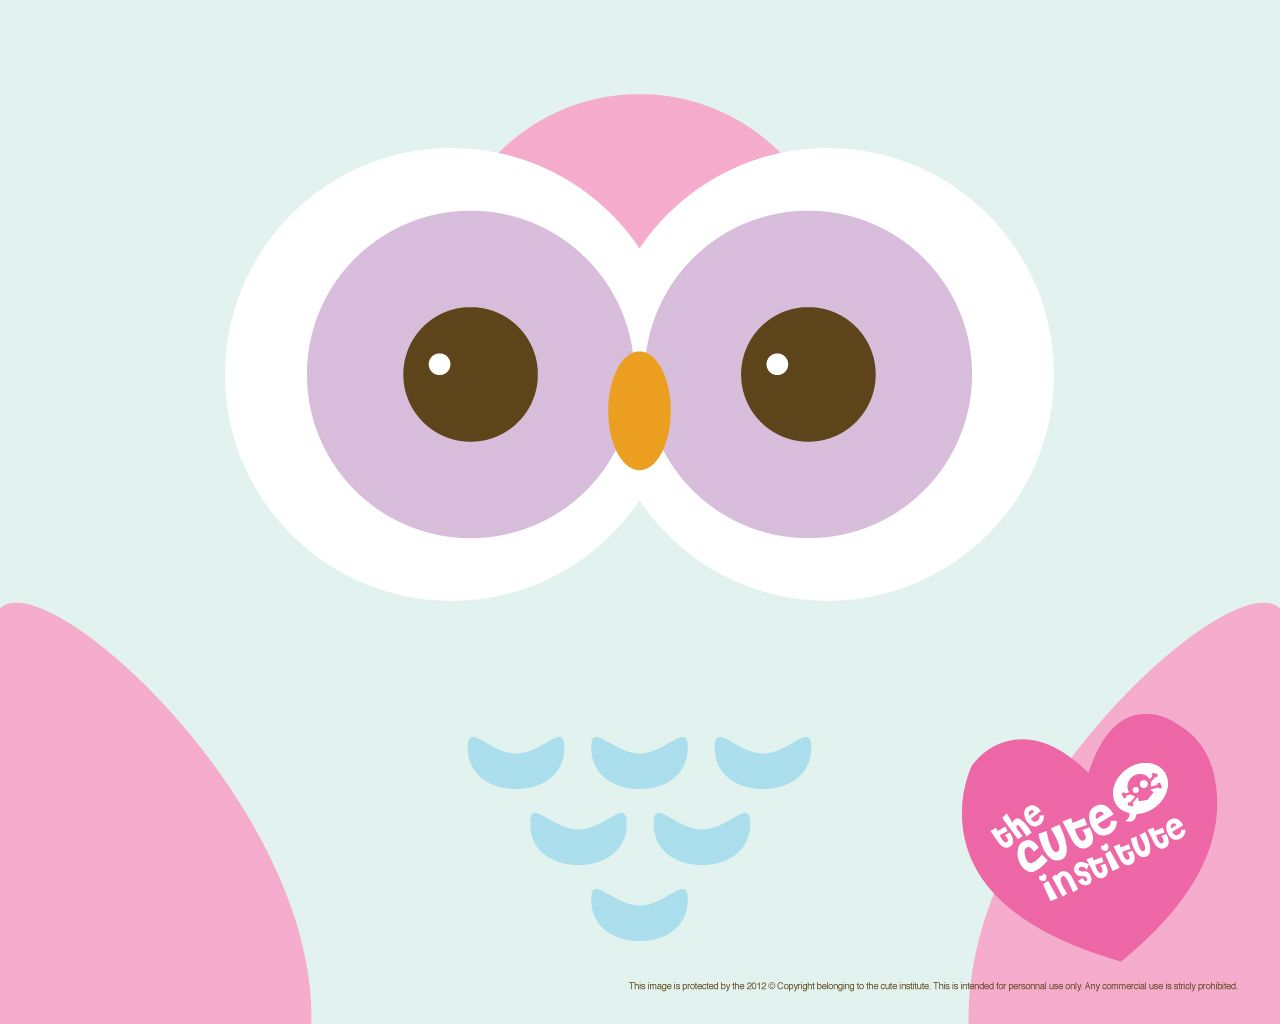 Cute Owl For Ipad Wallpaper High Quality Resolution Owl Wallpaper Cute Owls Wallpaper Owl Cartoon